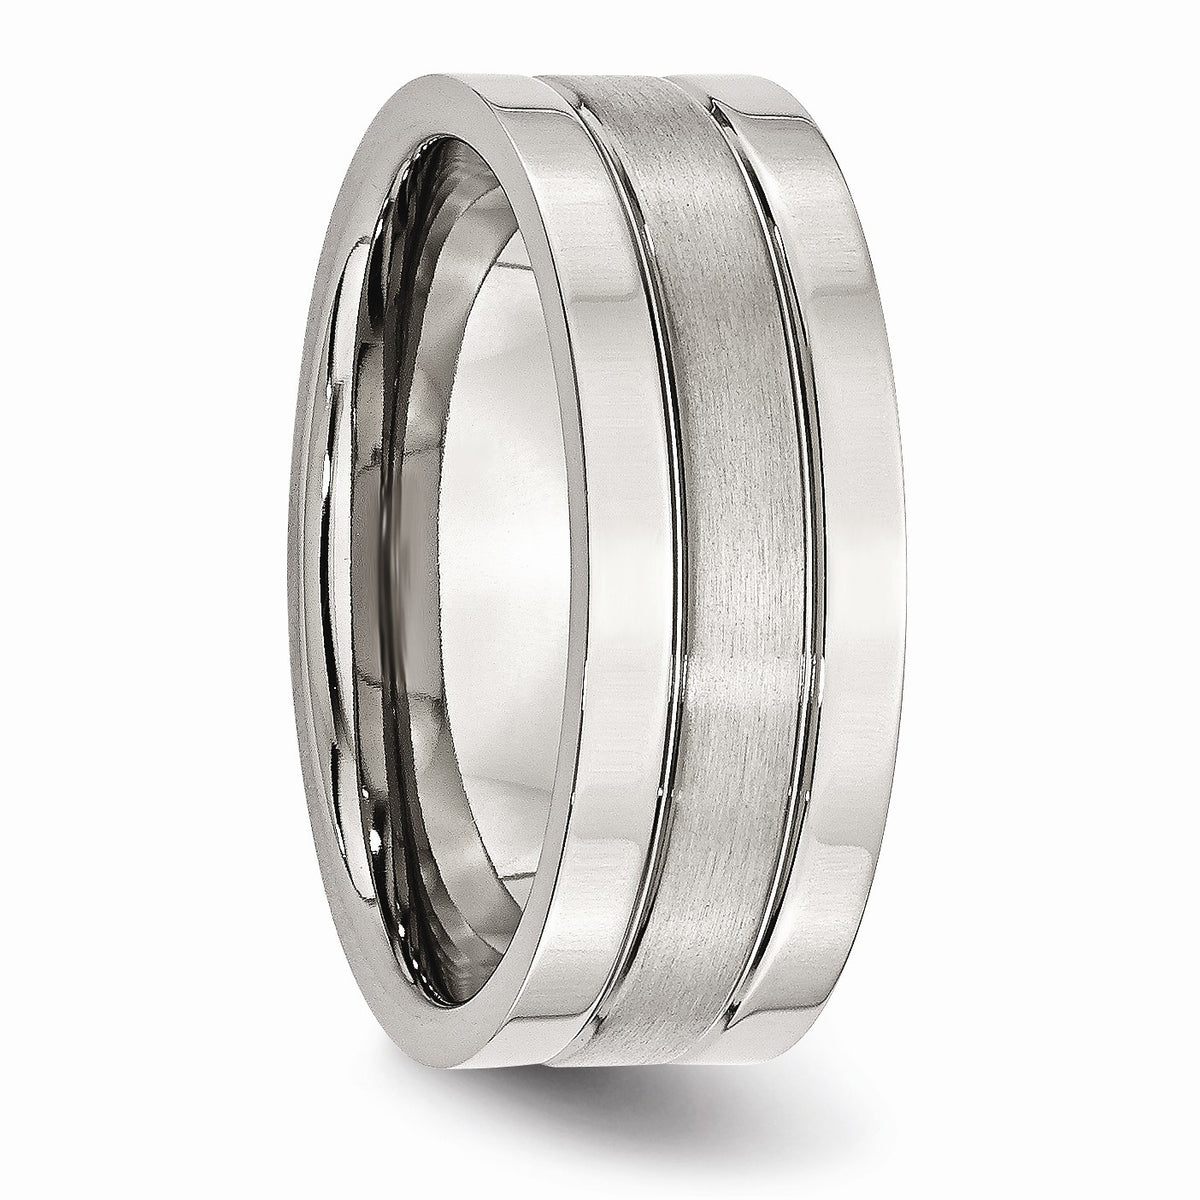 Alternate view of the Stainless Steel, 8mm Flat Grooved Unisex Comfort Fit Band by The Black Bow Jewelry Co.